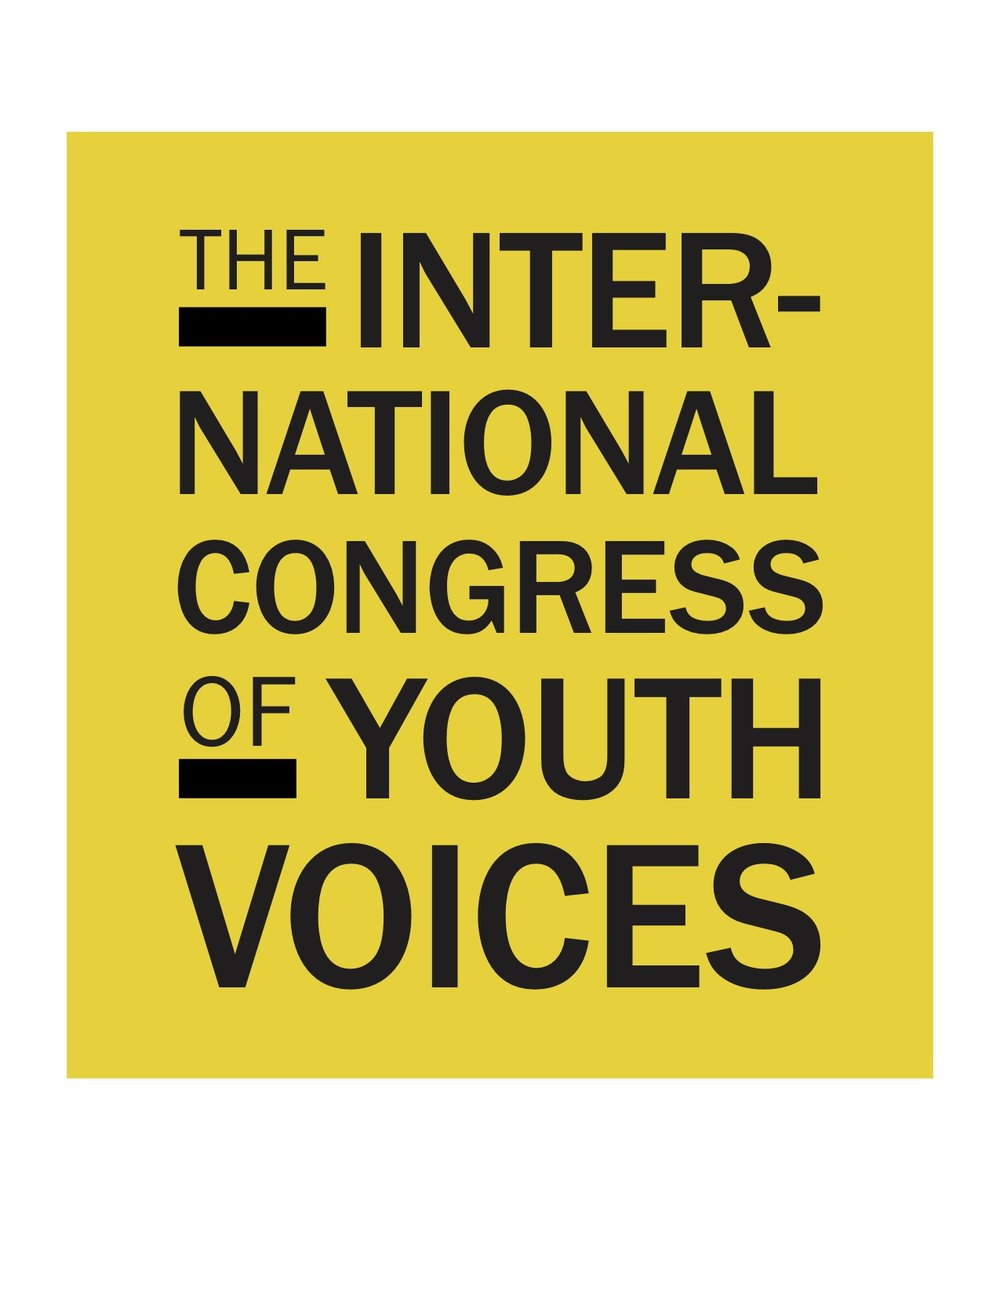 www.internationalcongressofyouthvoices.com